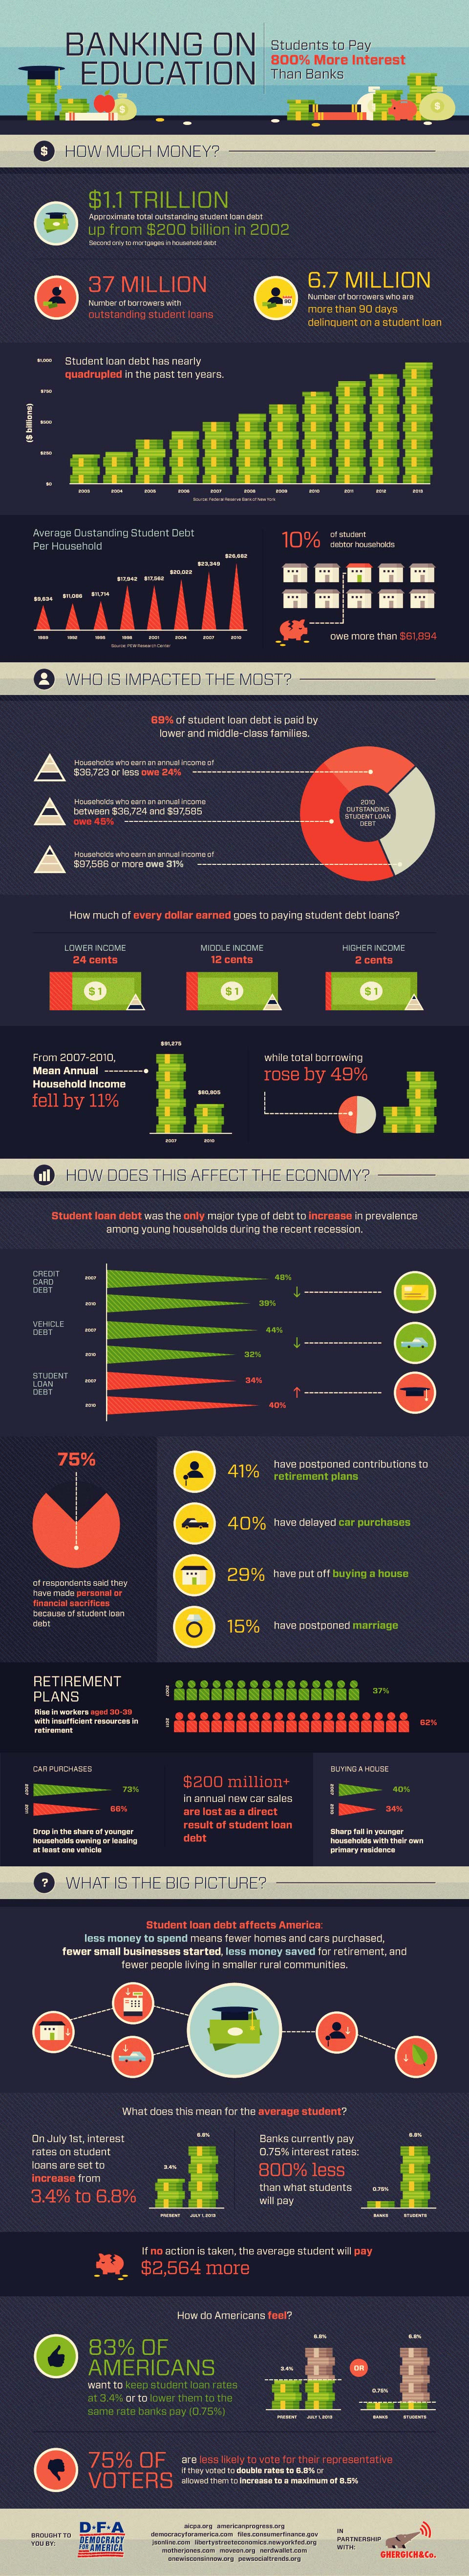 US Student Loan Debt Crisis-Infographic